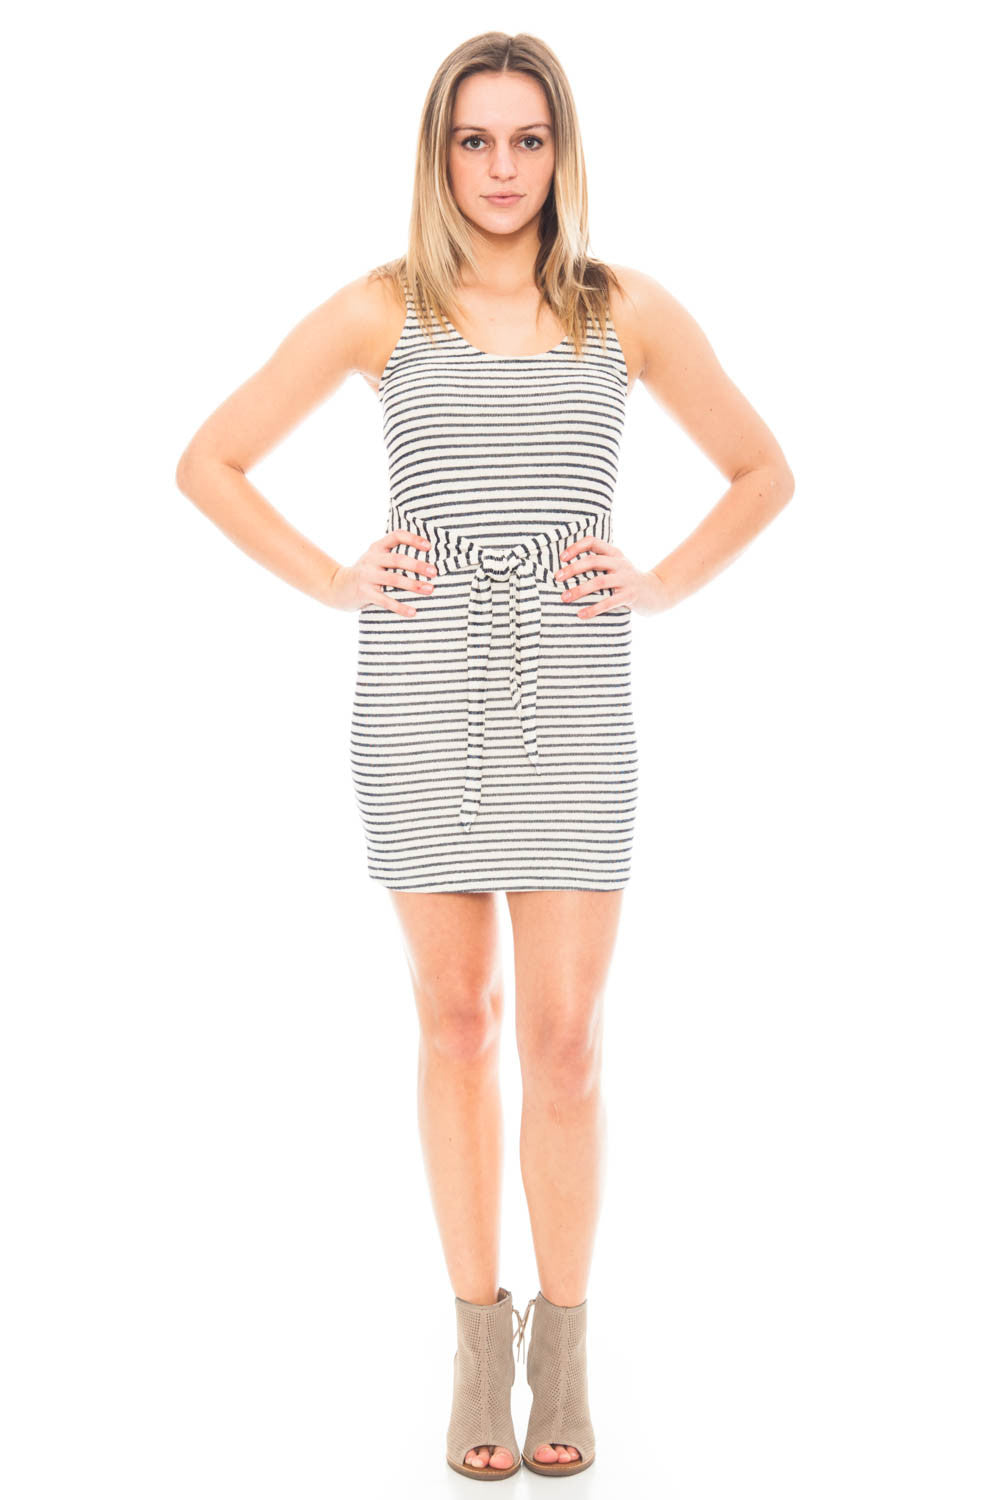 Dress - Striped Dress with Front Tie by Everly